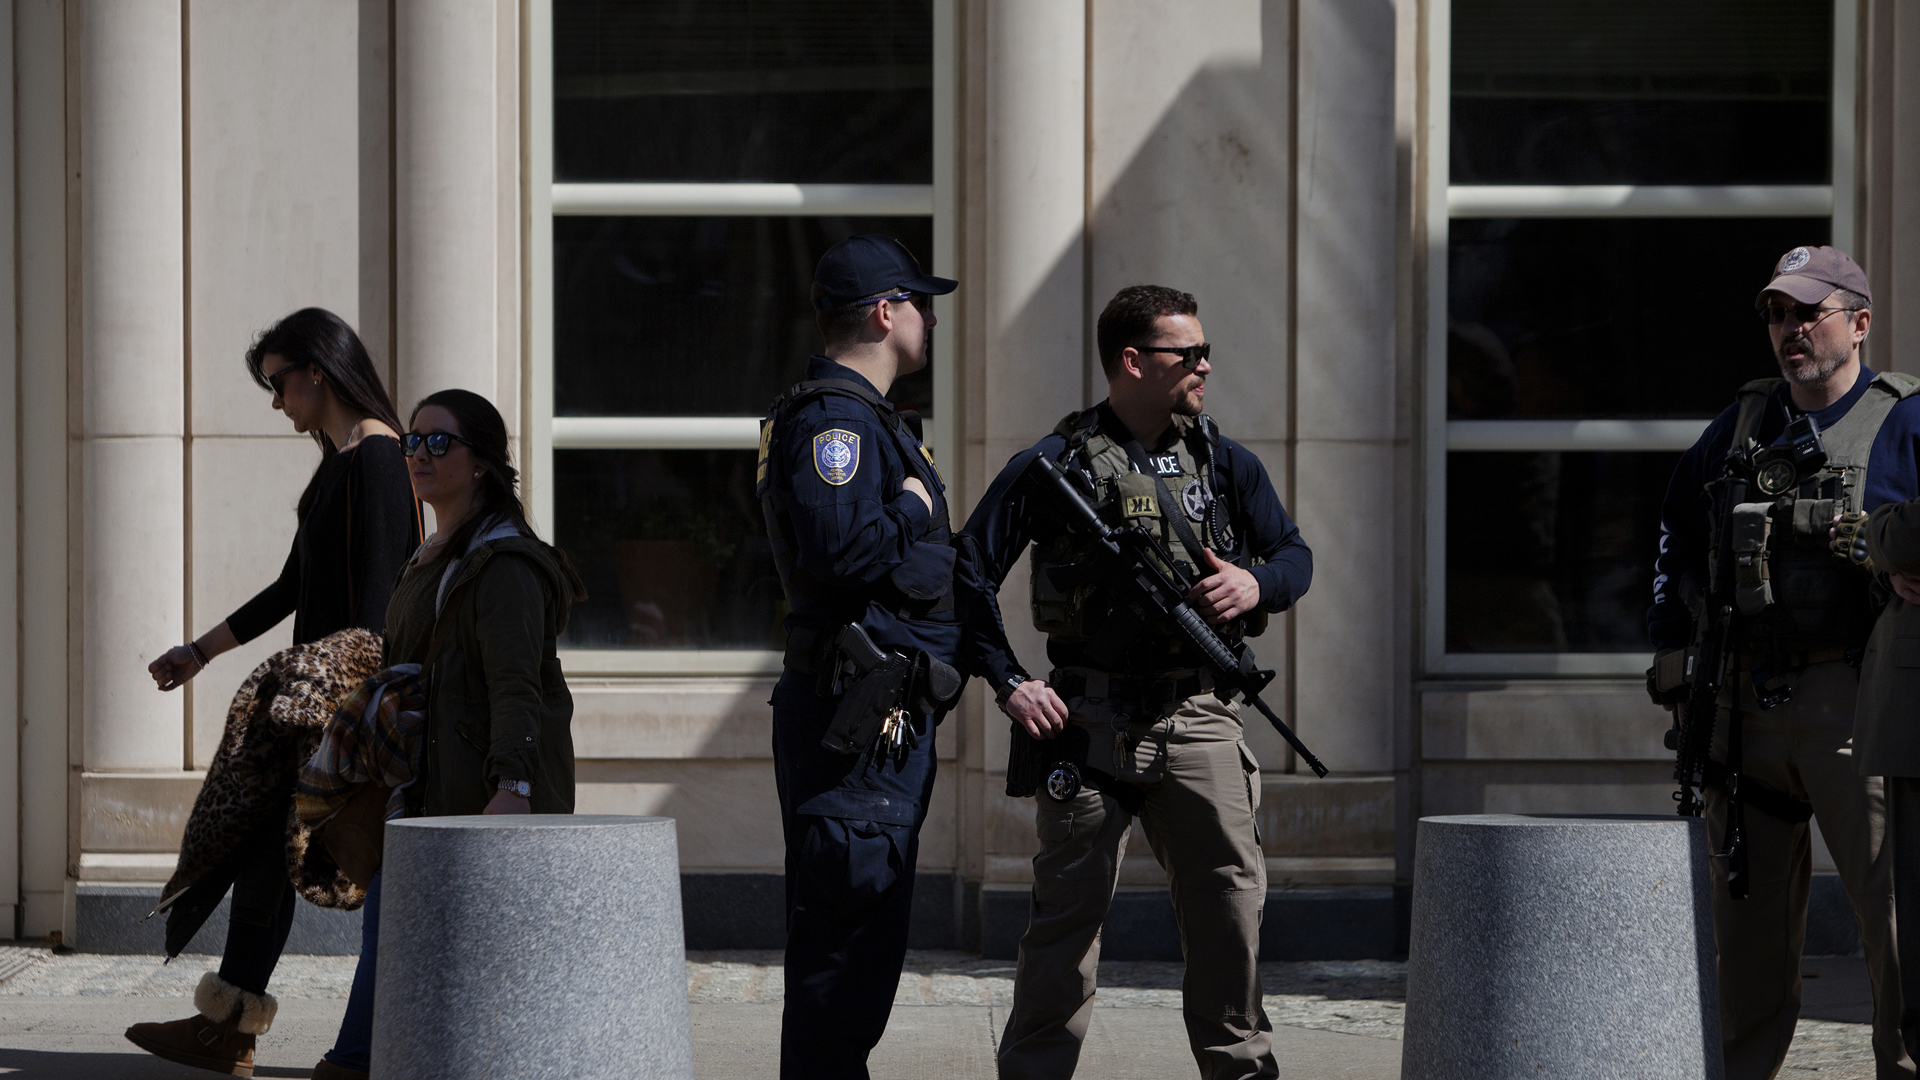 U.S. Marshals stand outside U.S. Federal Court in Brooklyn, New York, during the arraignment on terrorism charges against Muhanad Mahmoud al Farekh, and two Queens women, on April 2, 2015. (Credit: Victor J. Blue/Getty Images)